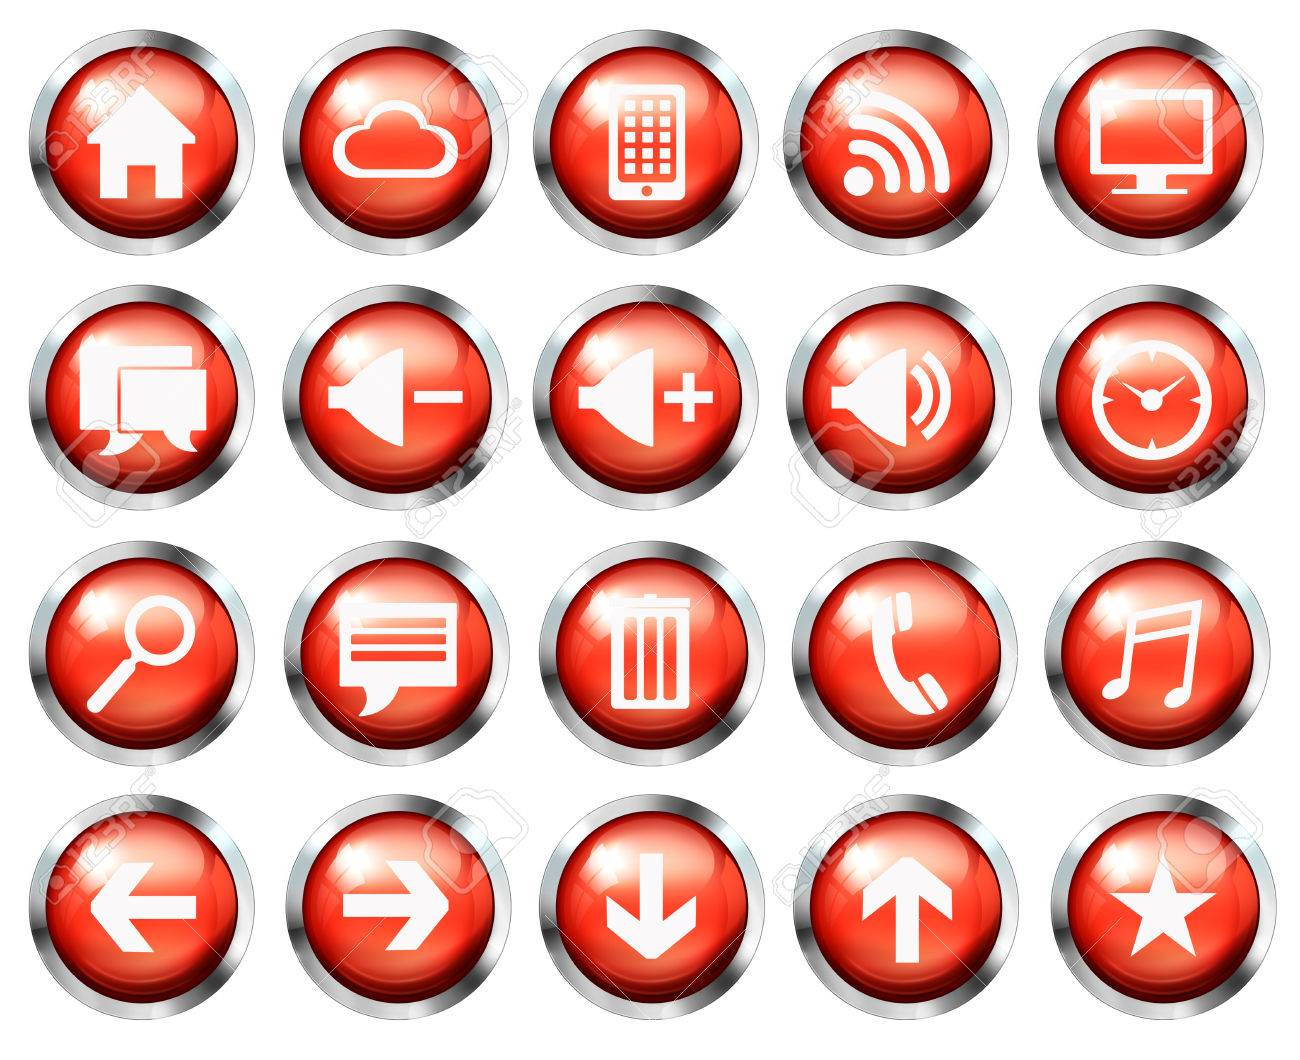 Apple aqua style icon set stock vector art & more images of icon.